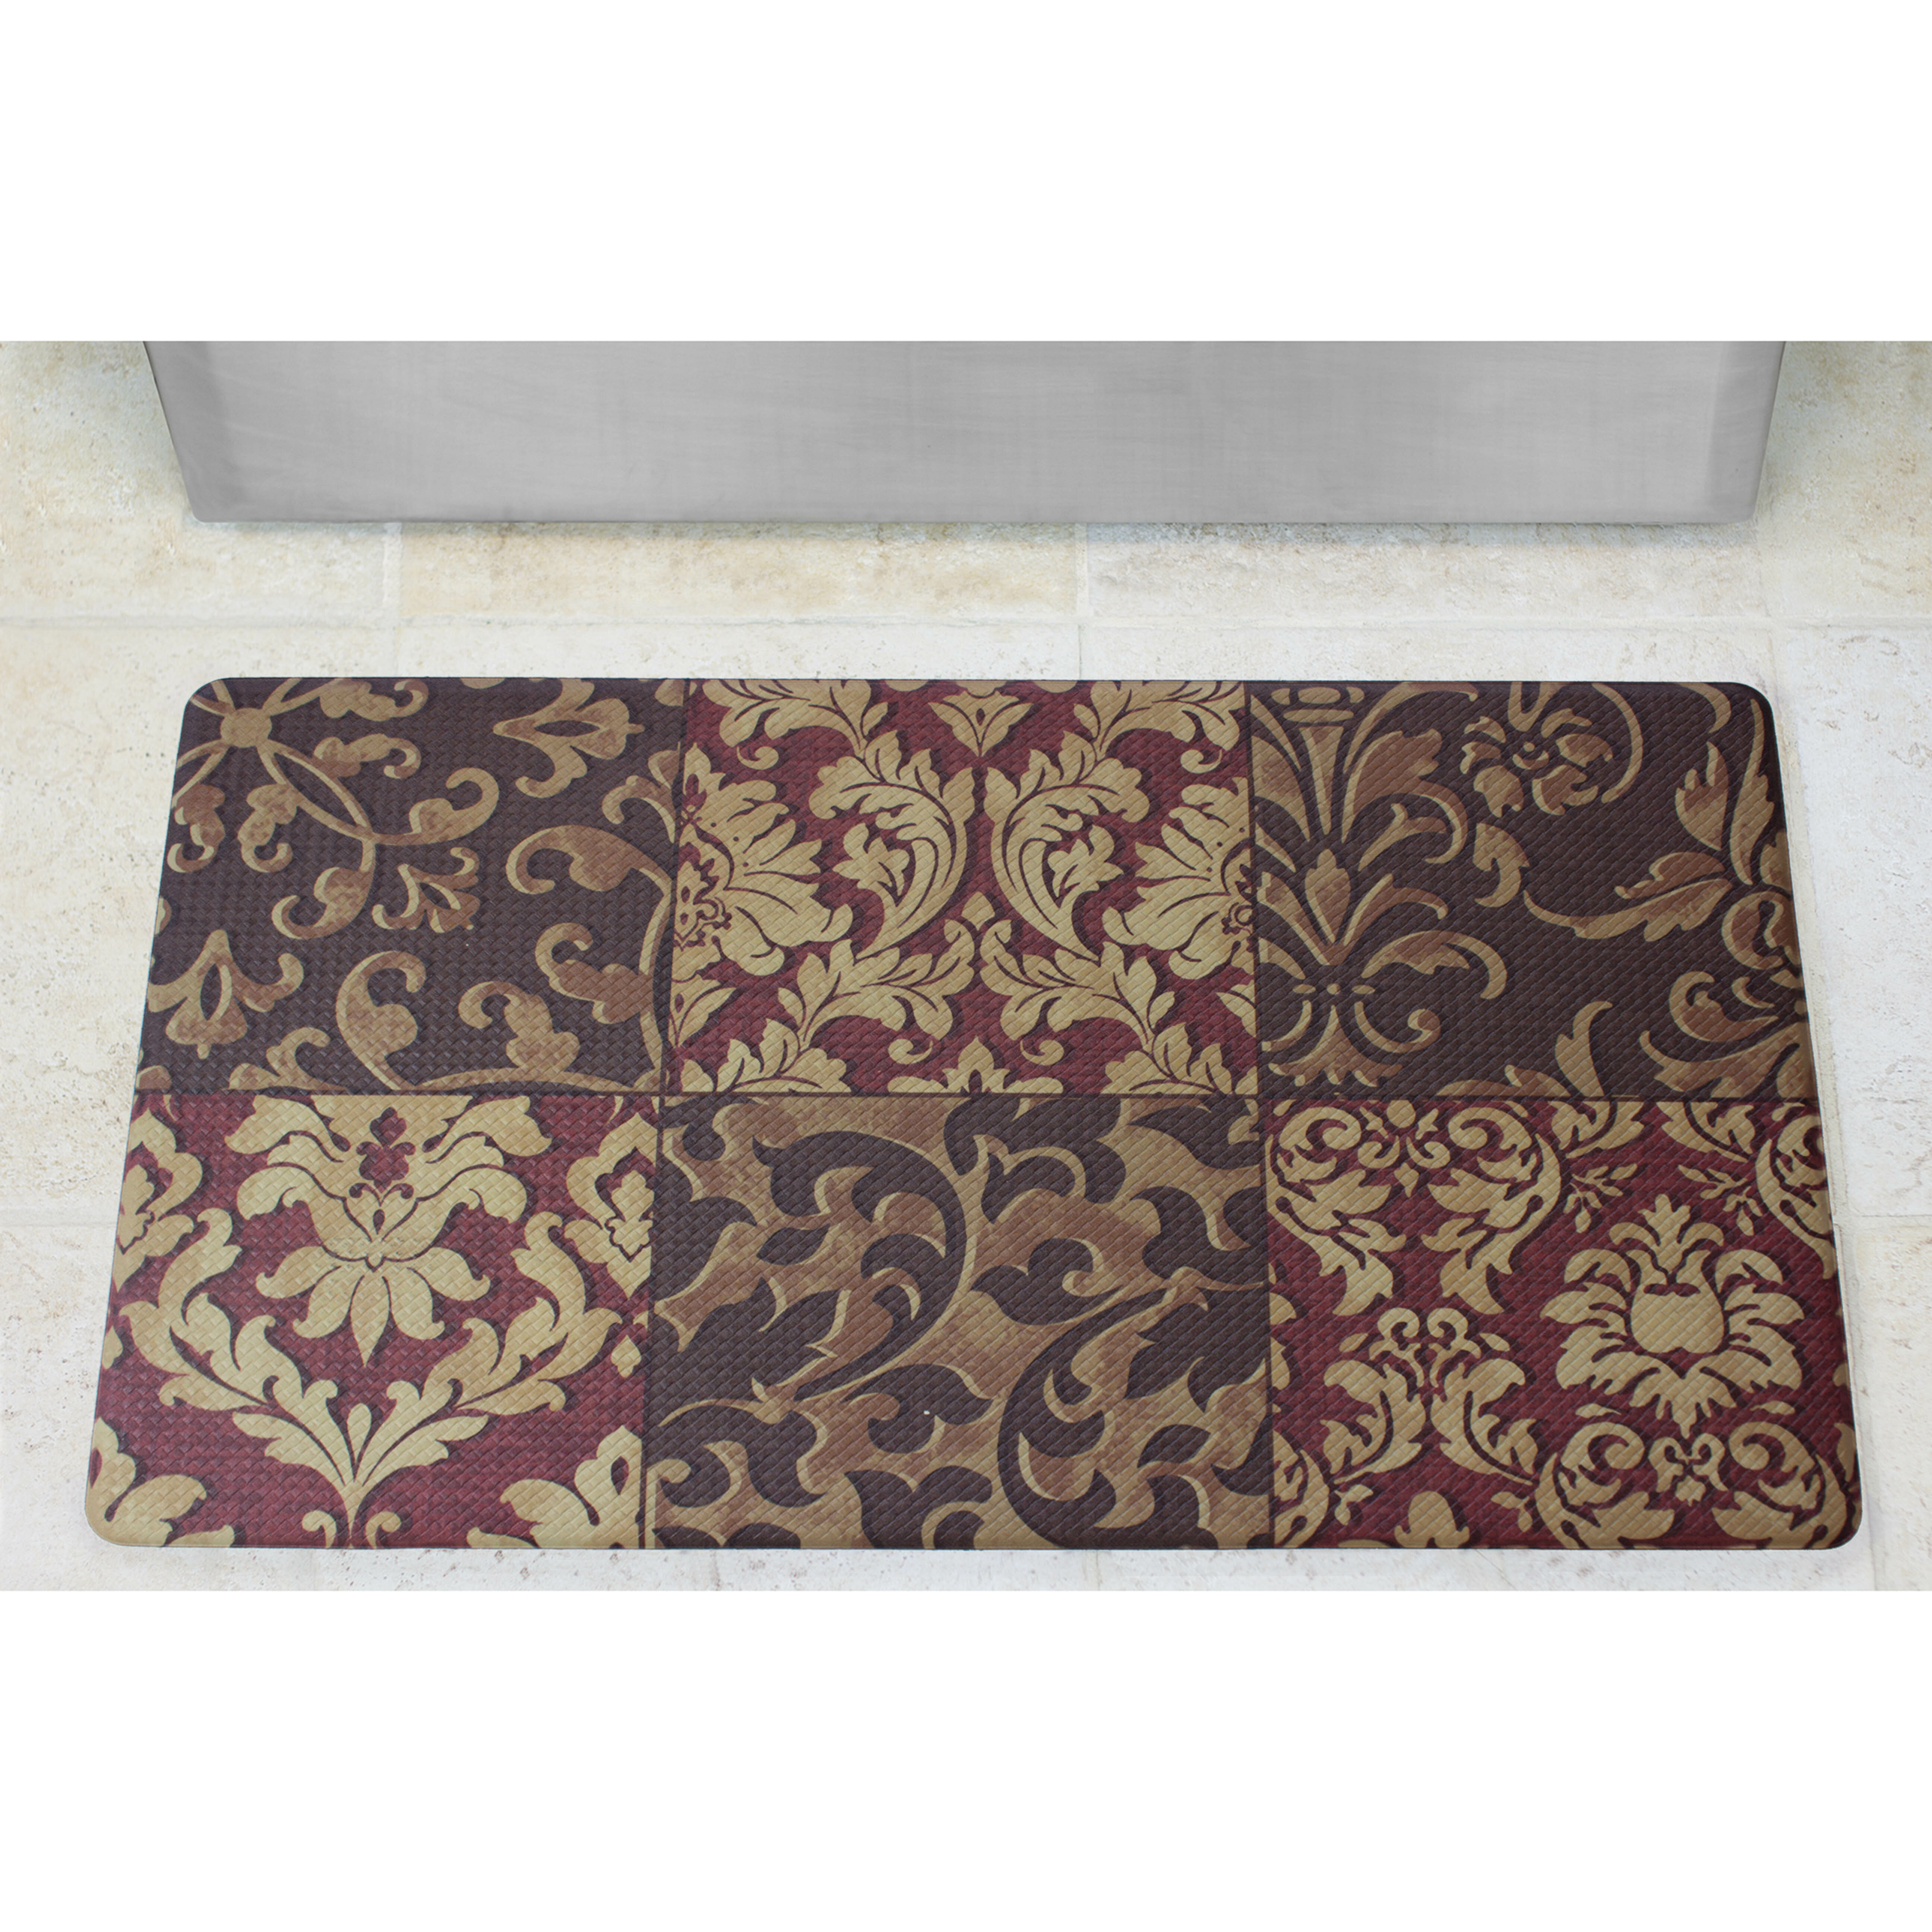 kitchen rubber rug outstanding pictures mats memory floor fatigue trends bed door with foam beautiful washable rugs ma mat costco wohnkultur wedge inspirations gel anti and cushioned home kohls